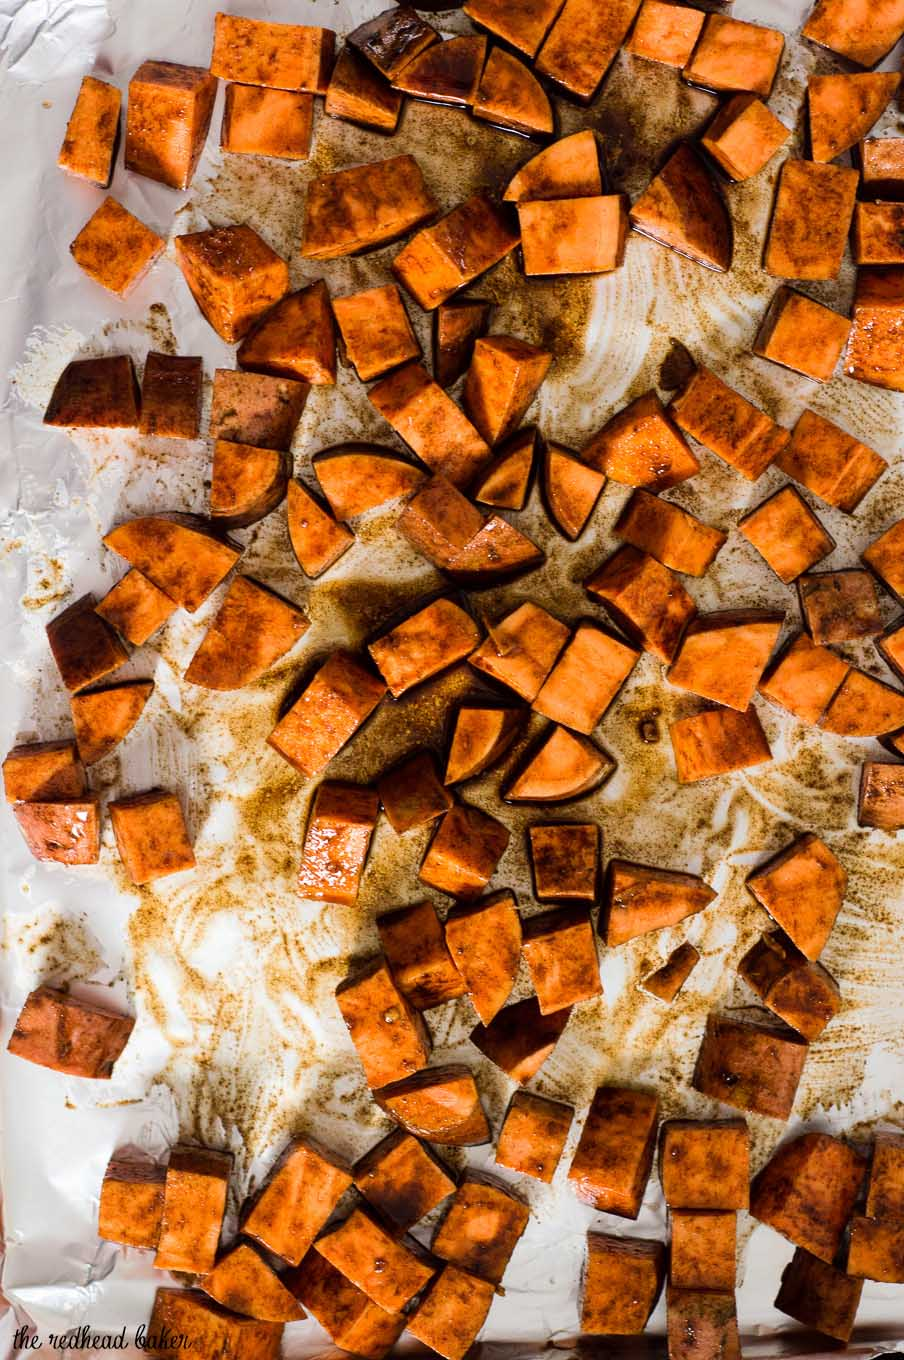 Cinnamon vanilla roasted sweet potatoes are a different, delicious way to enjoy the root vegetable. So easy and ready in 30 minutes!